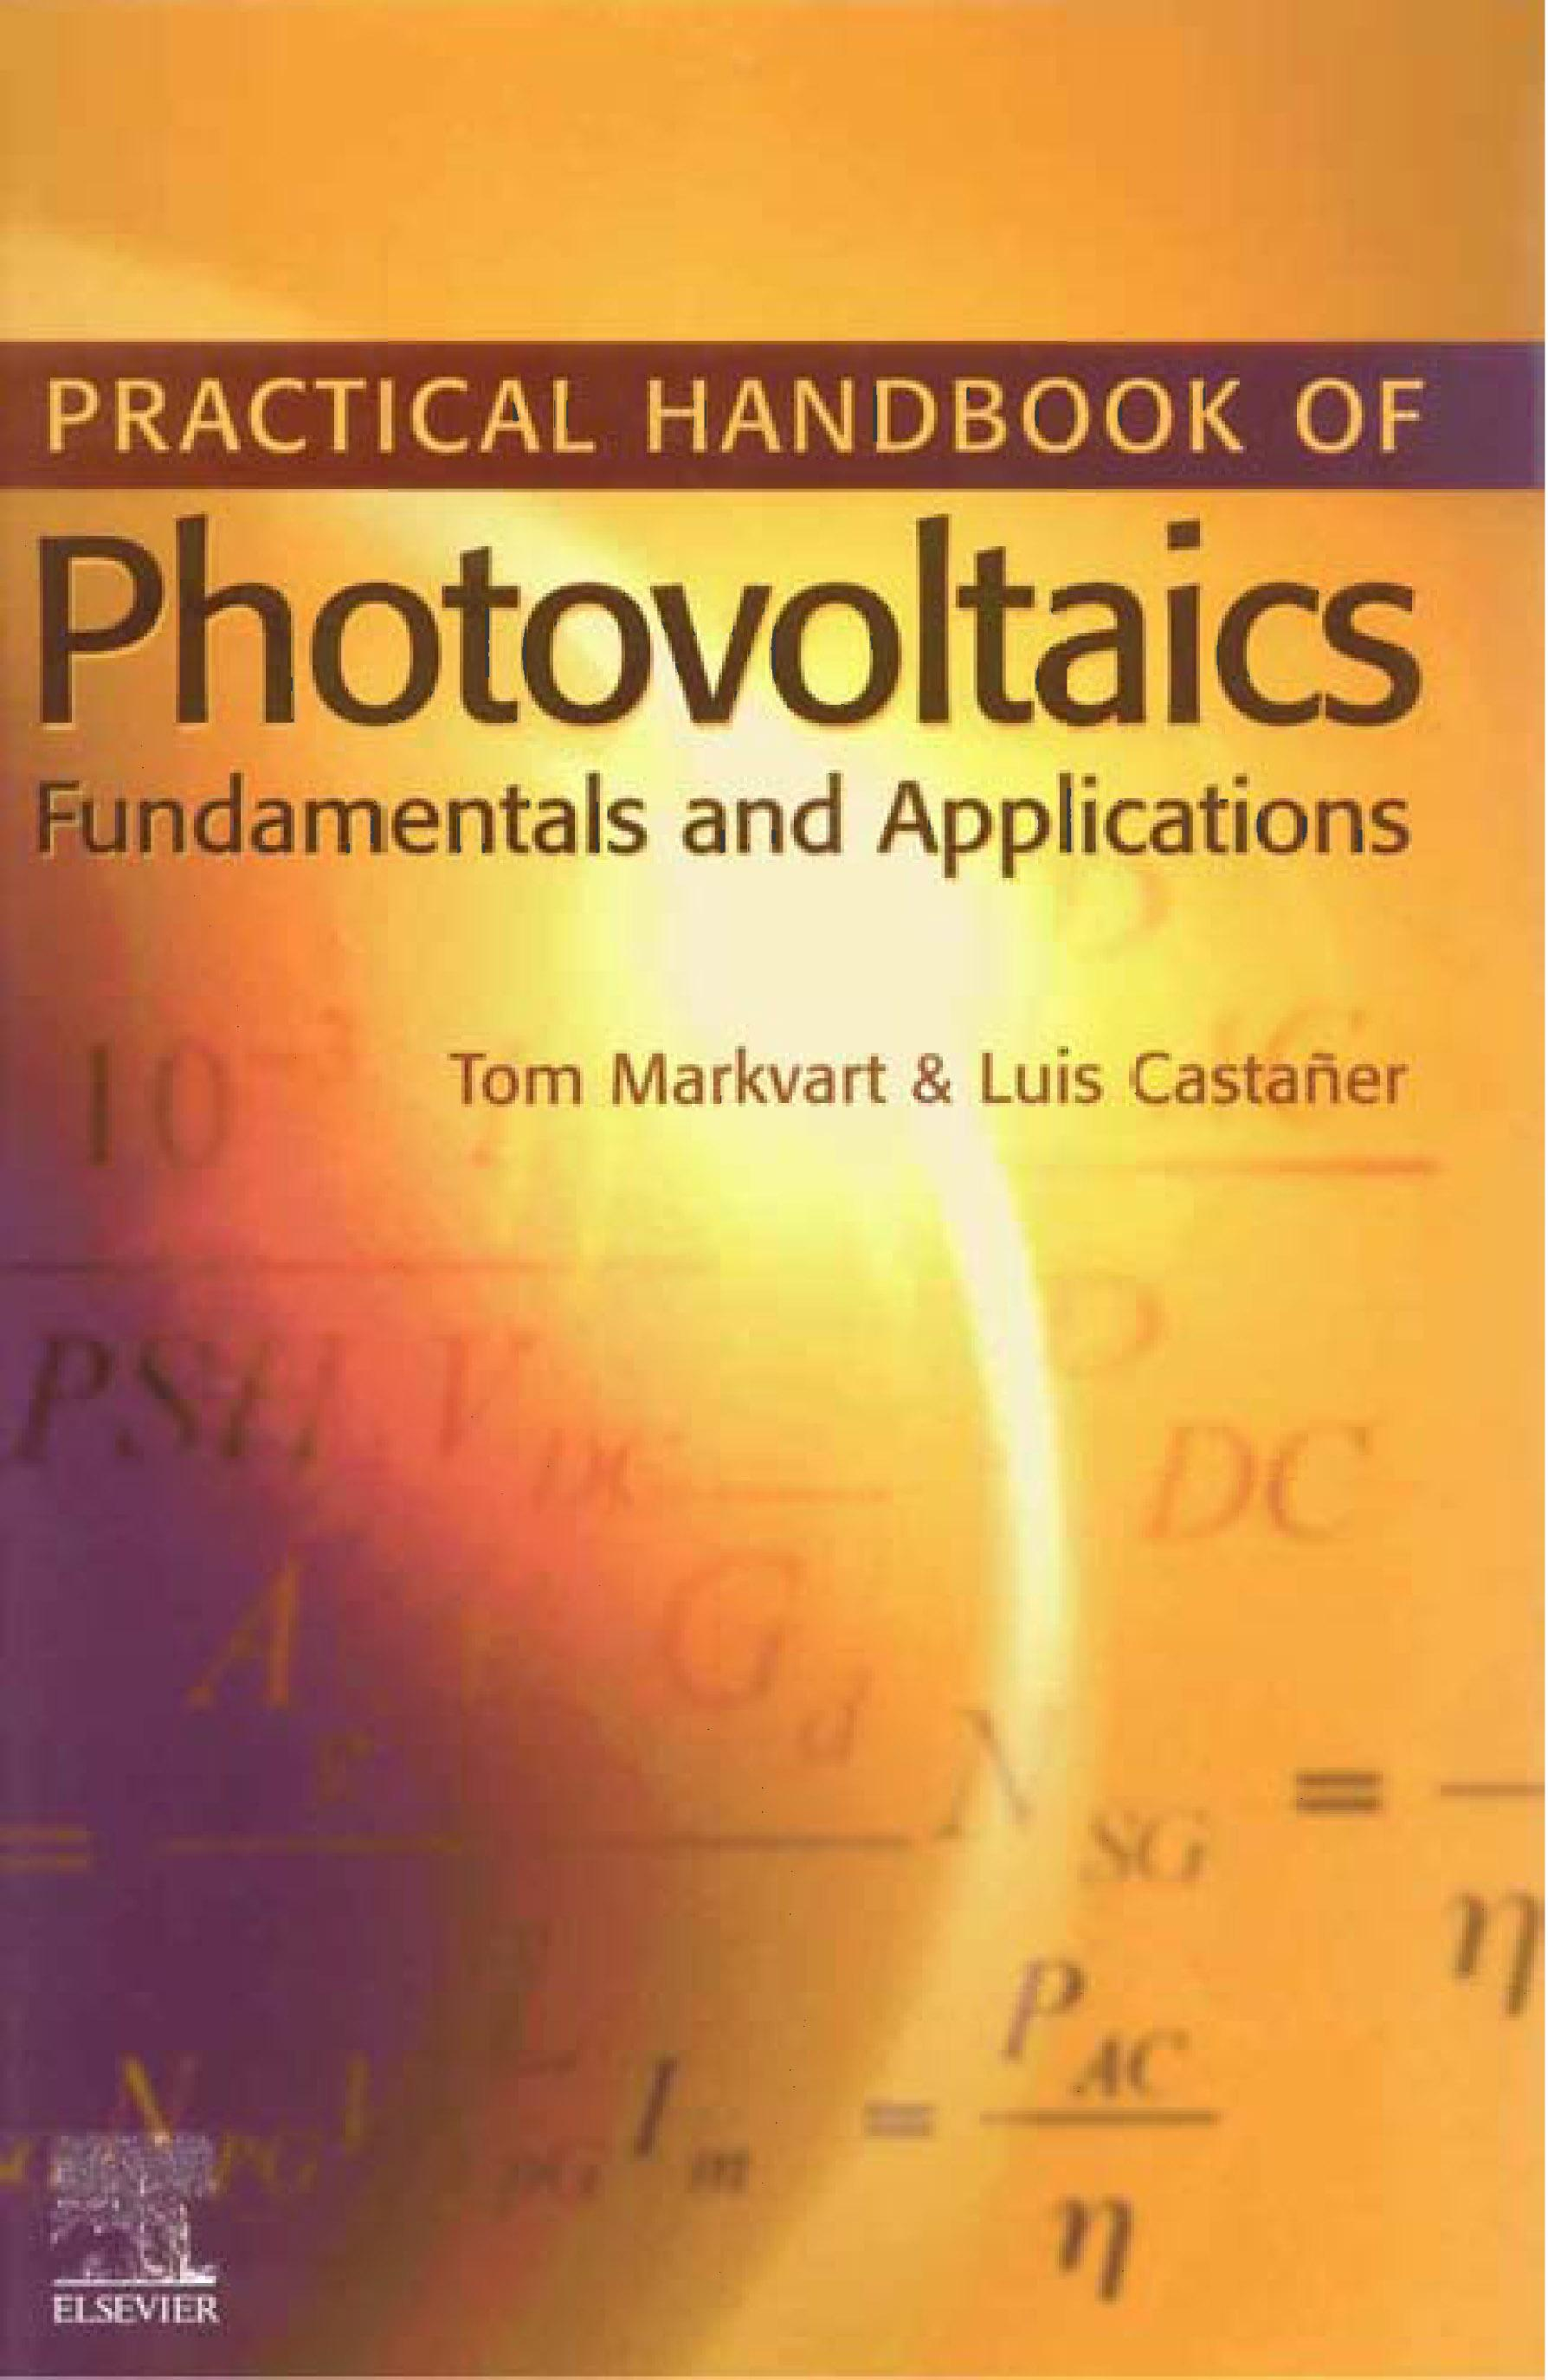 Practical Handbook of Photovoltaics: Fundamentals and Applications: Fundamentals and Applications EB9780080480206